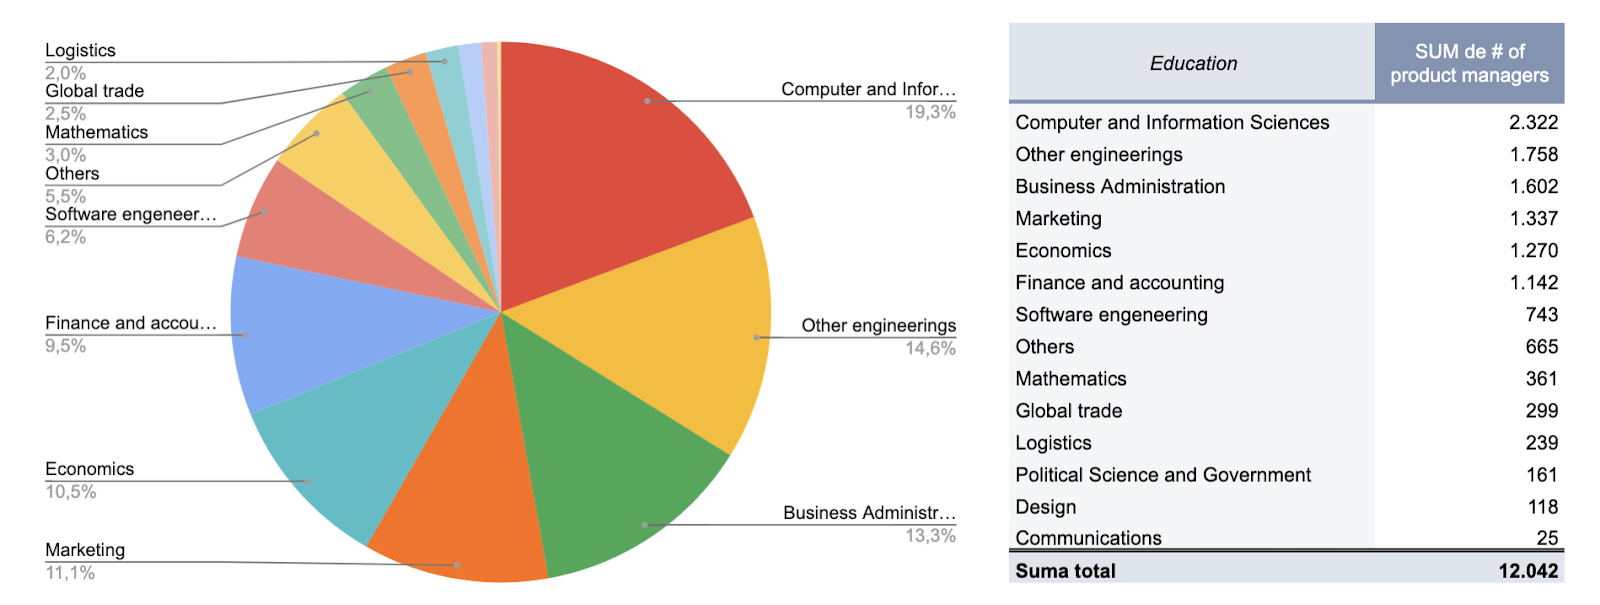 A table showing the educational background of product people in leading tech companies